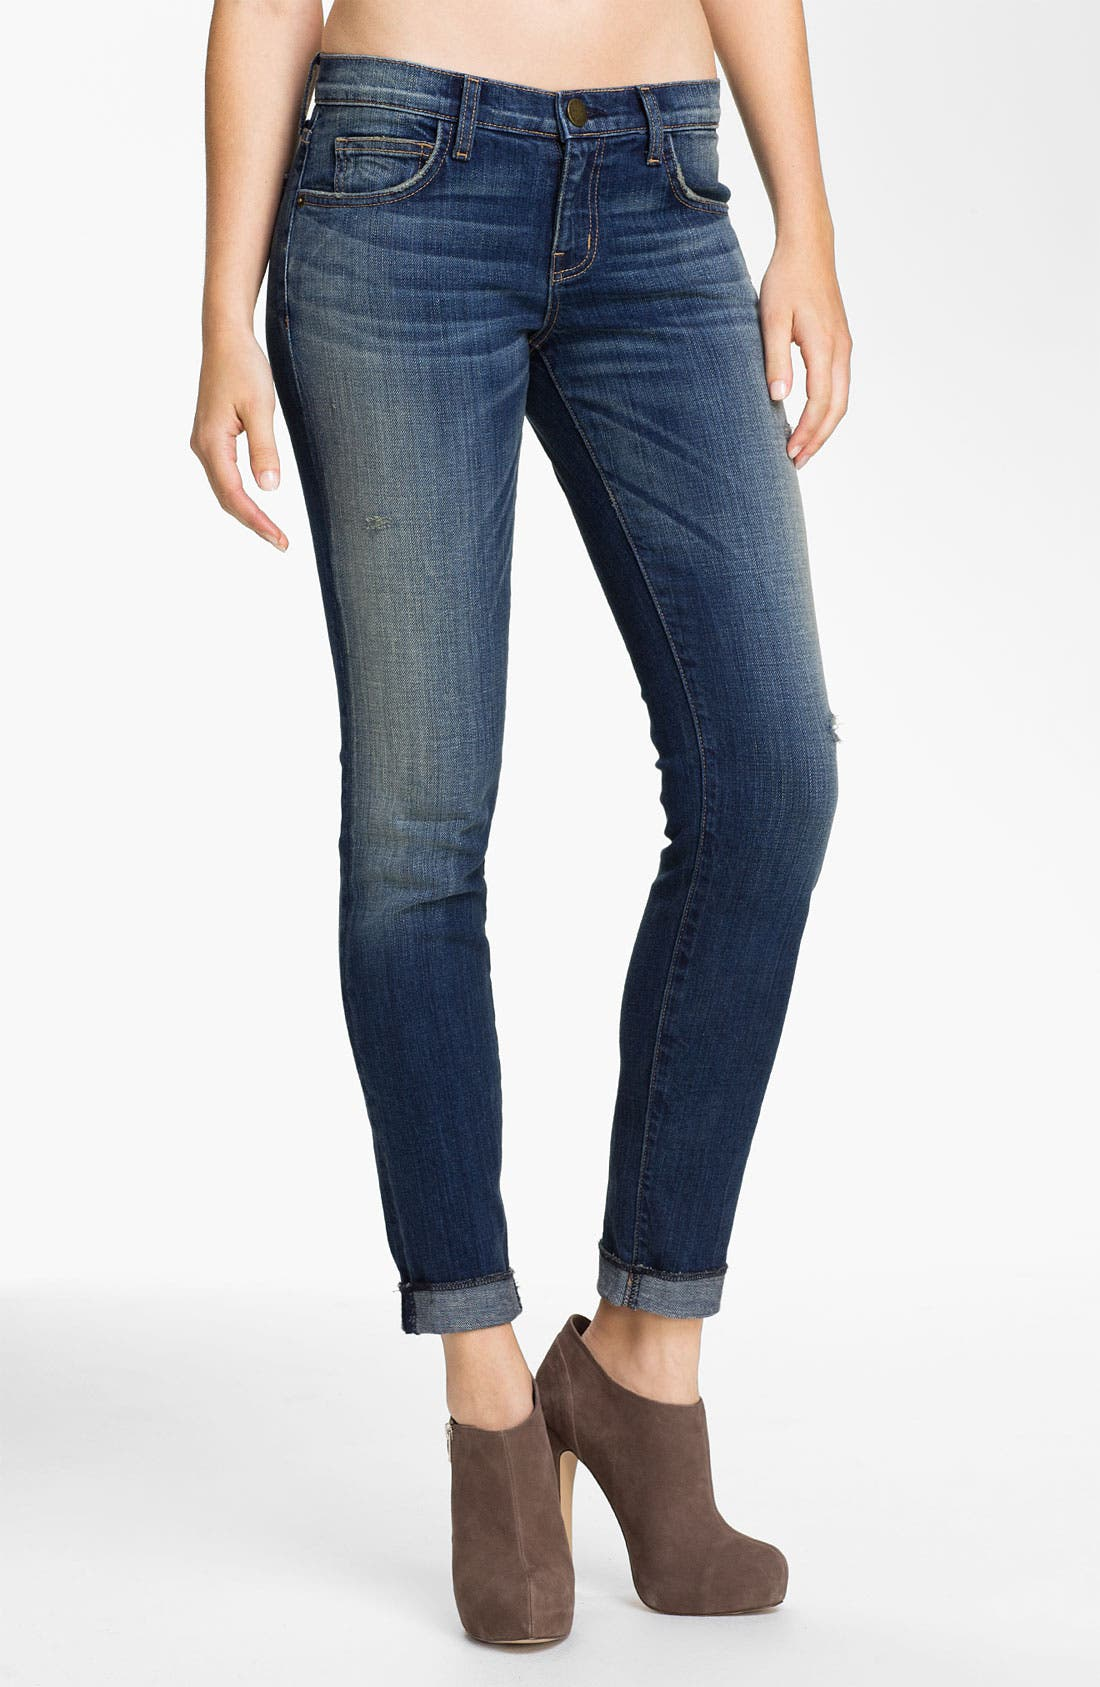 Alternate Image 1 Selected - Current/Elliott 'The Rolled' Stretch Jeans (Wager)